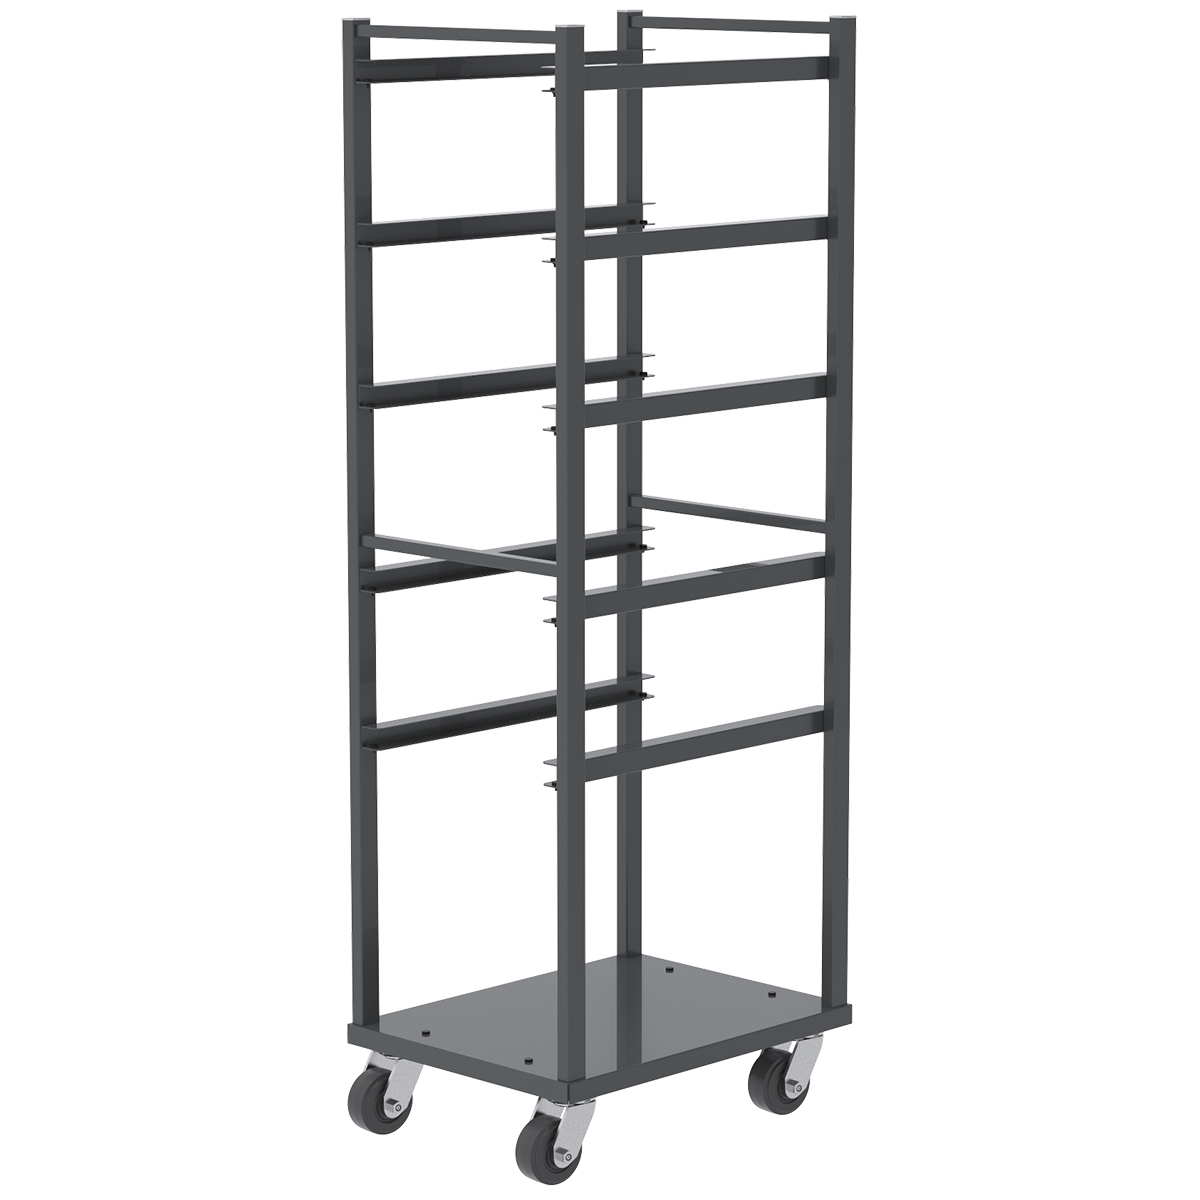 Item DISCONTINUED by Manufacturer.  6 Shelf Rack For Jumbo Lug Tub, 4x2 Mold-on Rubber, Gray.  This item sold in carton quantities of 1.